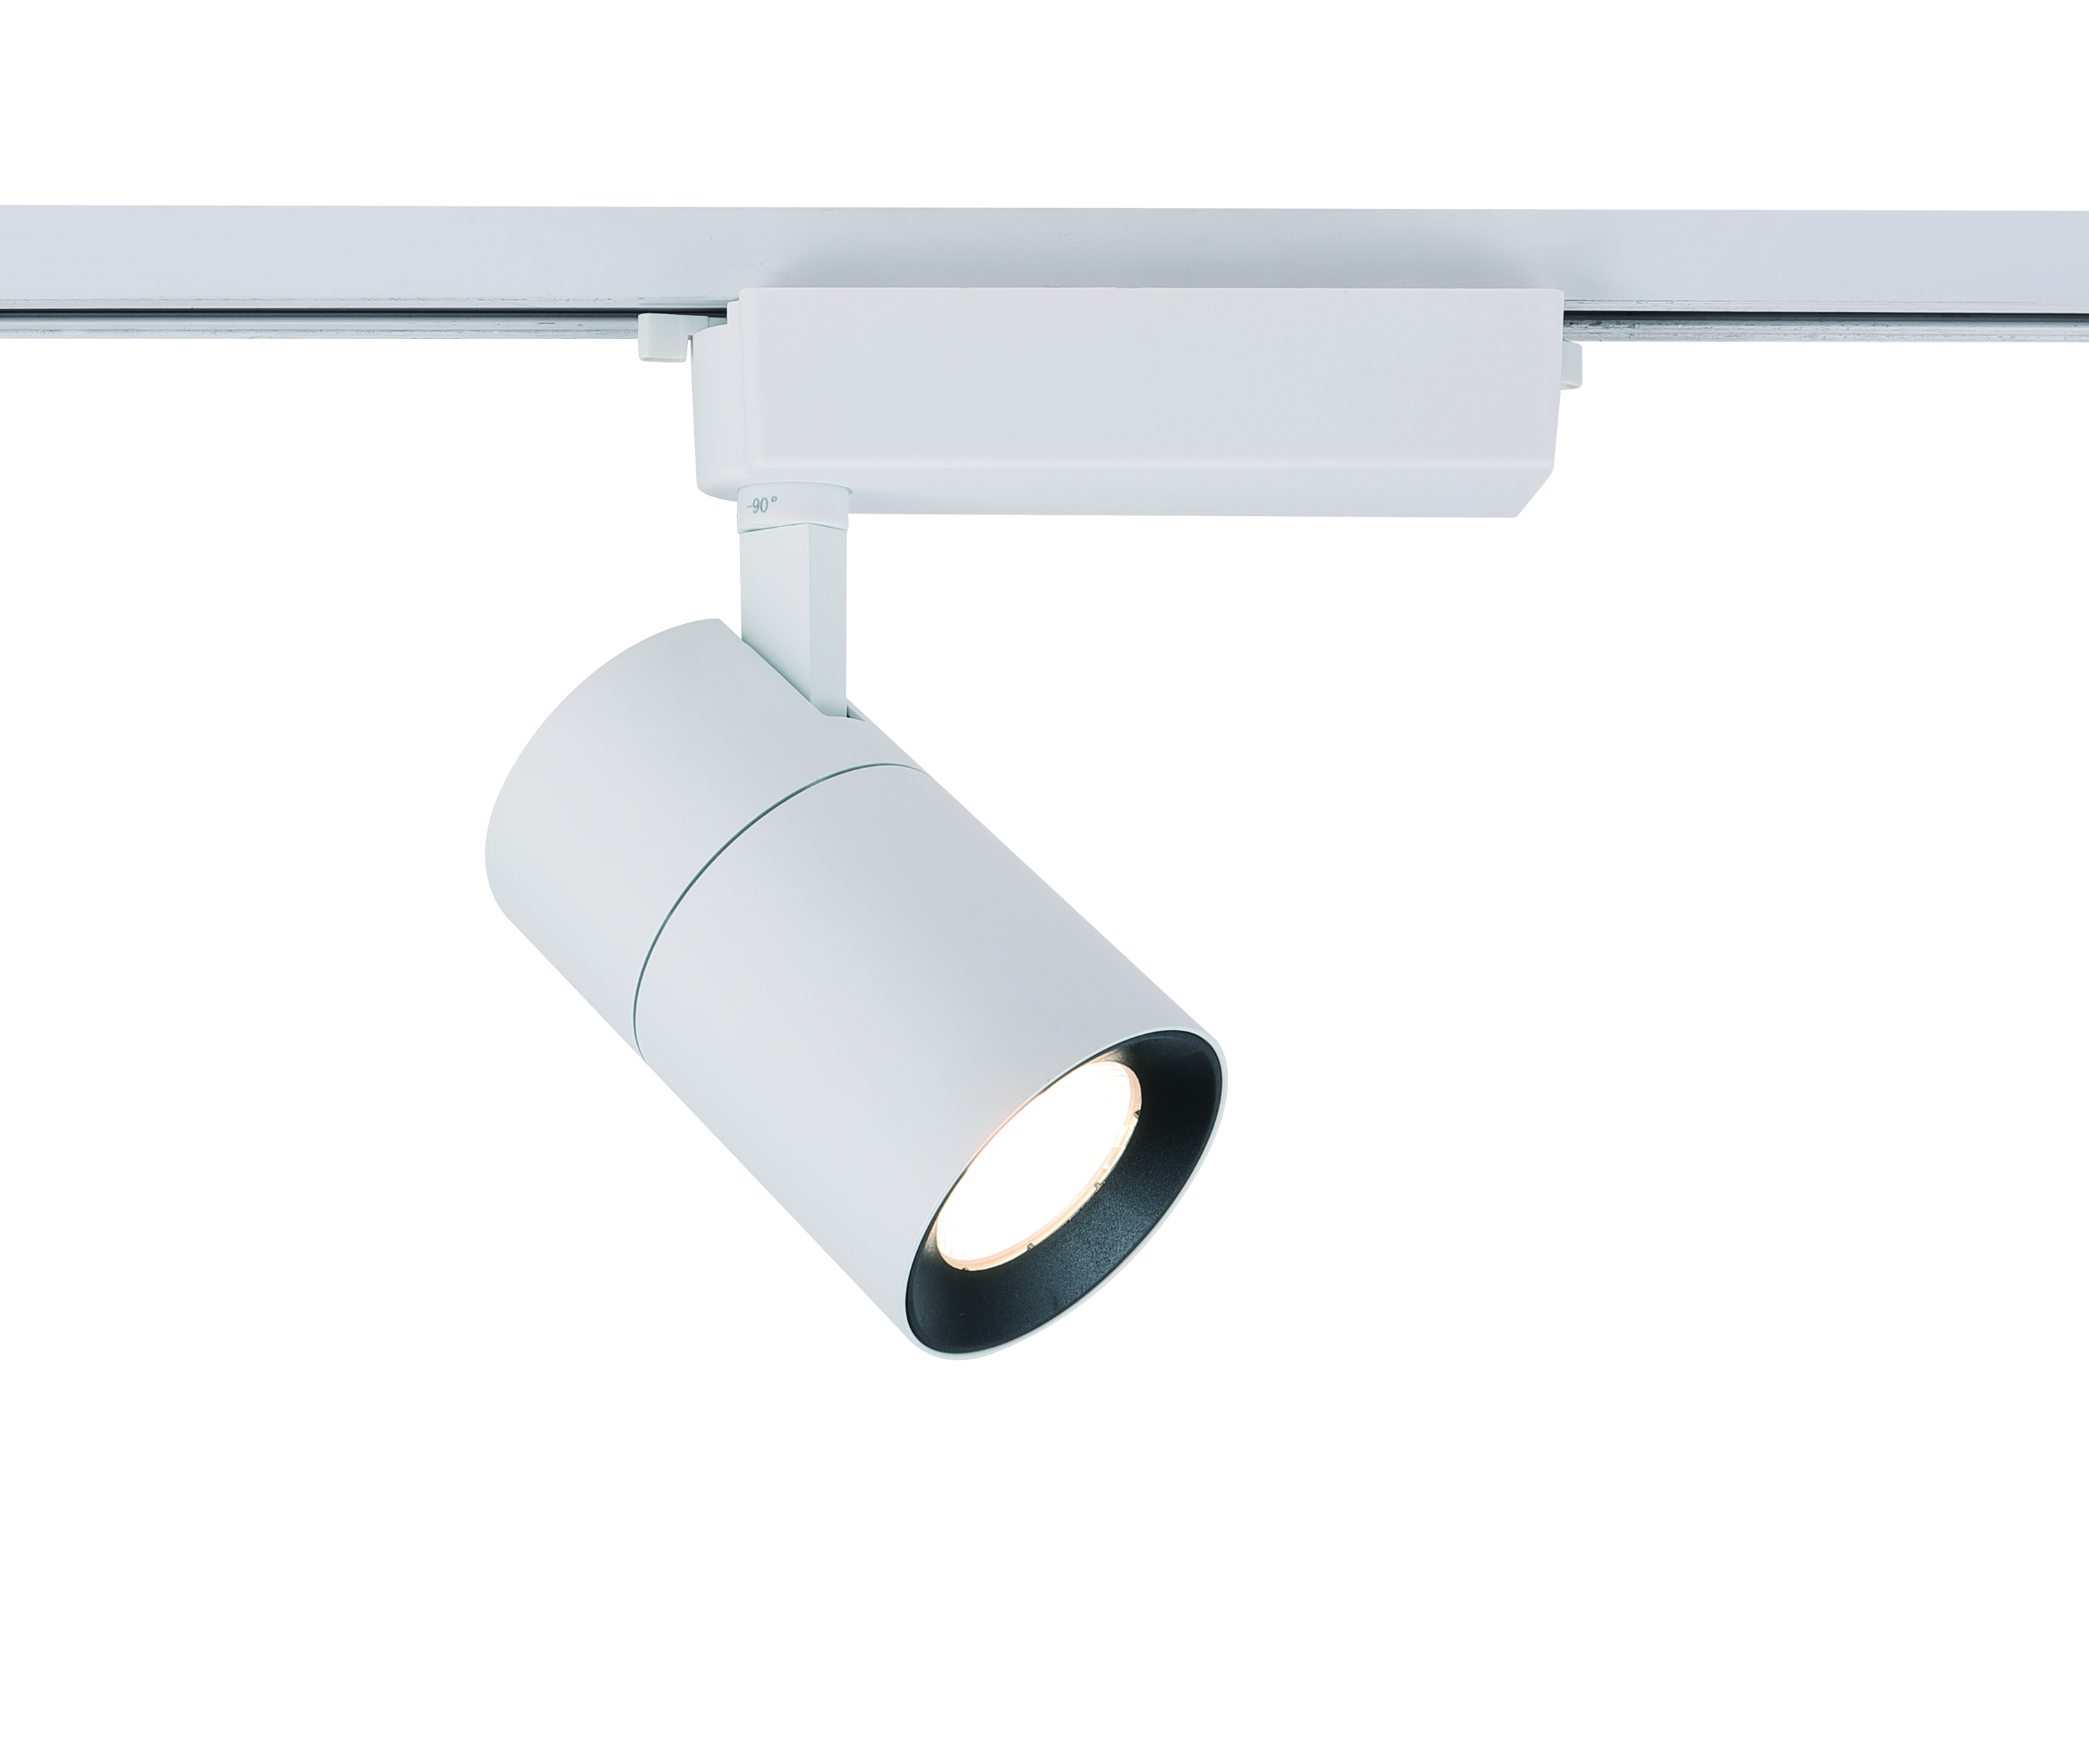 YPL729 series LED COB track light